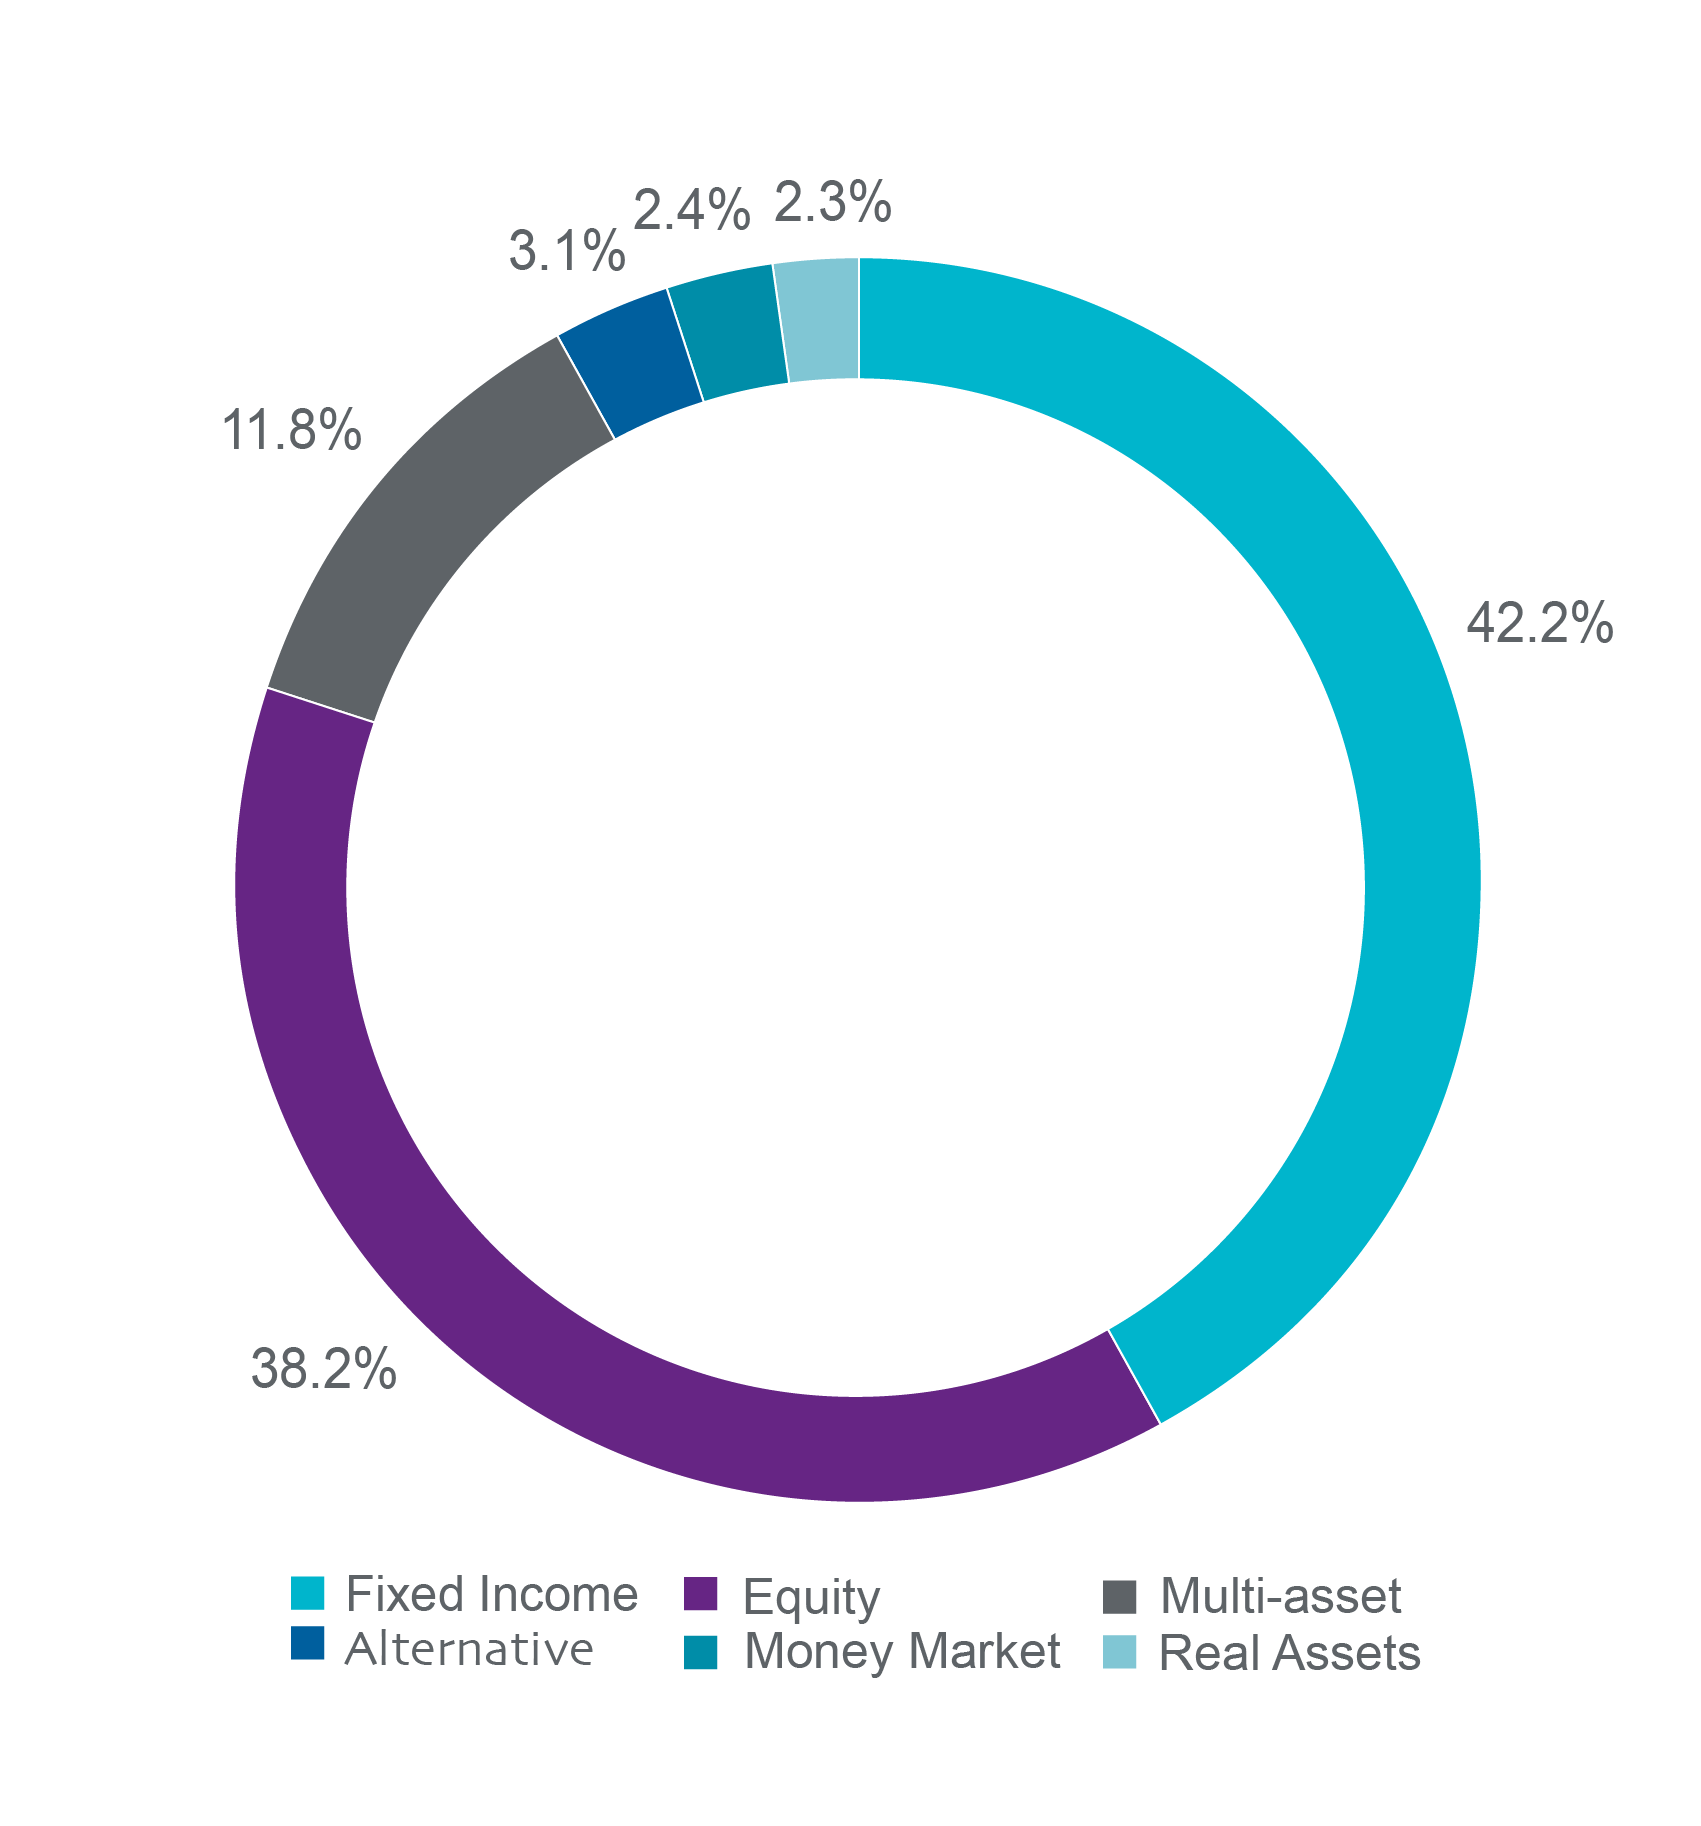 Figure 1 pie chart shows allocations: Fixed income (42.2%), Equity (38.2%), Multi-asset (11.8%), Alternatives (3.1%), Real assets (2.3x%) and Money market (2.4%).